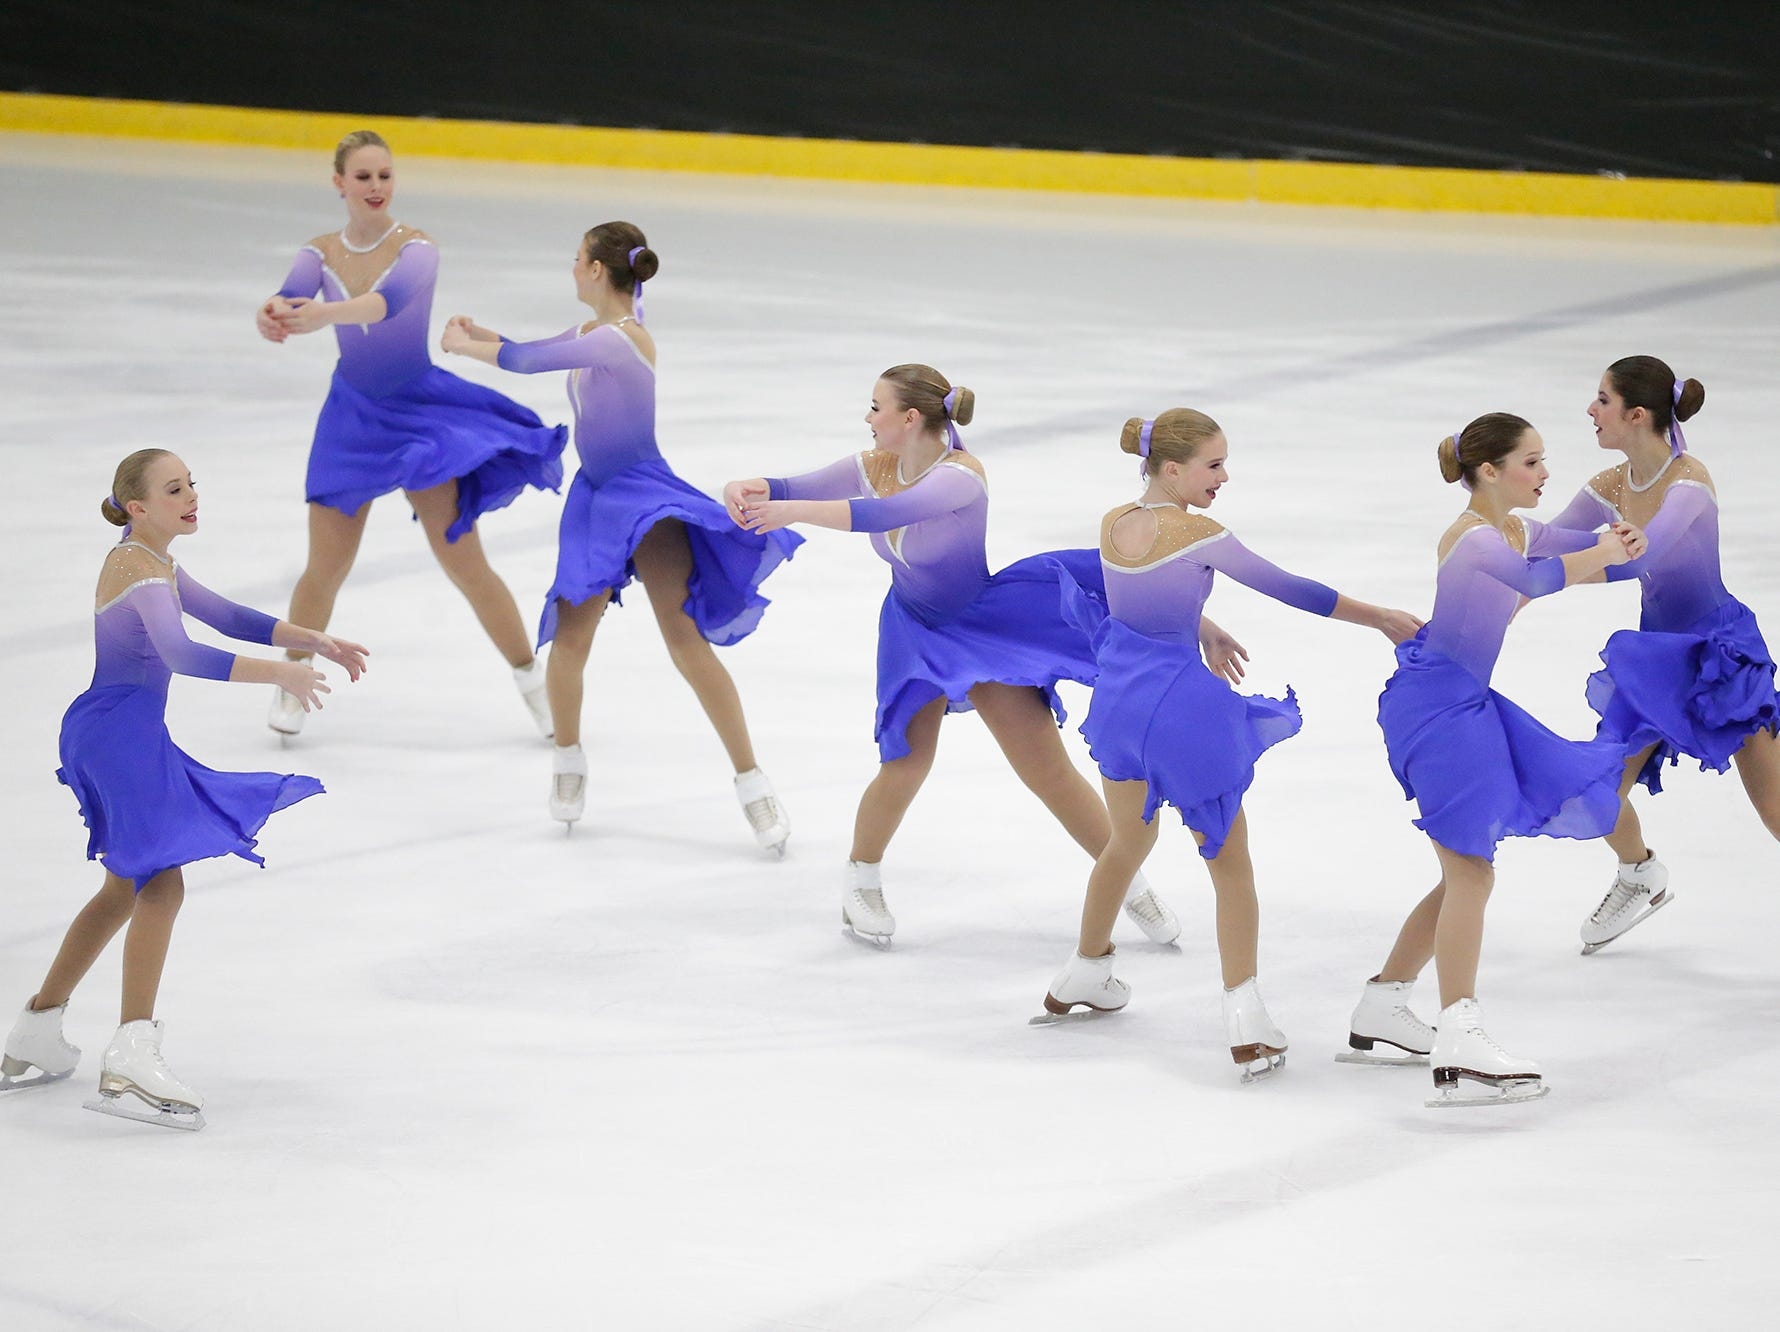 The Fond du Lac Blades perform Saturday, January 5, 2019 at the Blue Line Family Ice Center in Fond du Lac, Wisconsin during the Foot Of The Lake Synchronized Skating Classic. Dozens of teams from around the United States compete in this day long event. Doug Raflik/USA TODAY NETWORK-Wisconsin